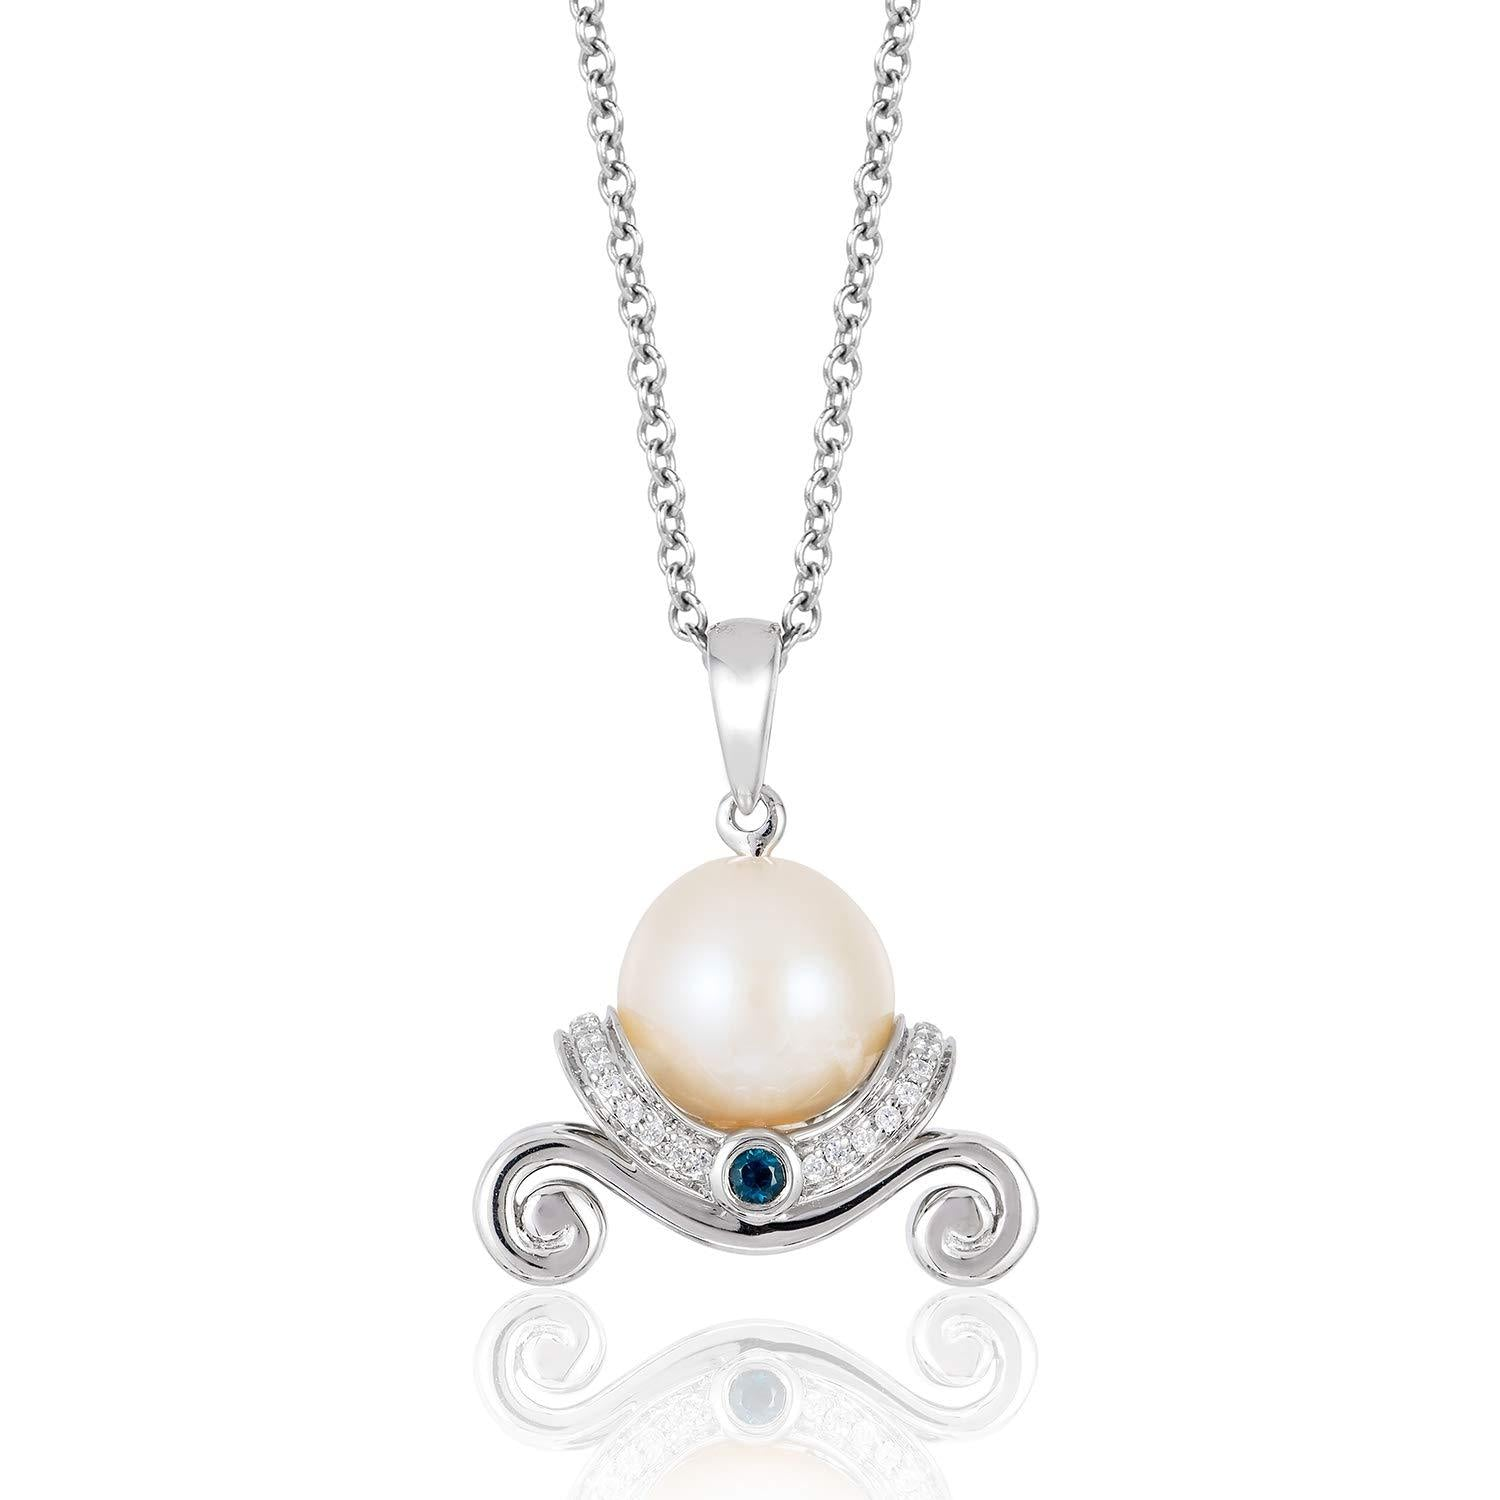 enchanted_disney-cinderella_pearl_london_blue_topaz_pendant-sterling_silver_1/10CTTW_1